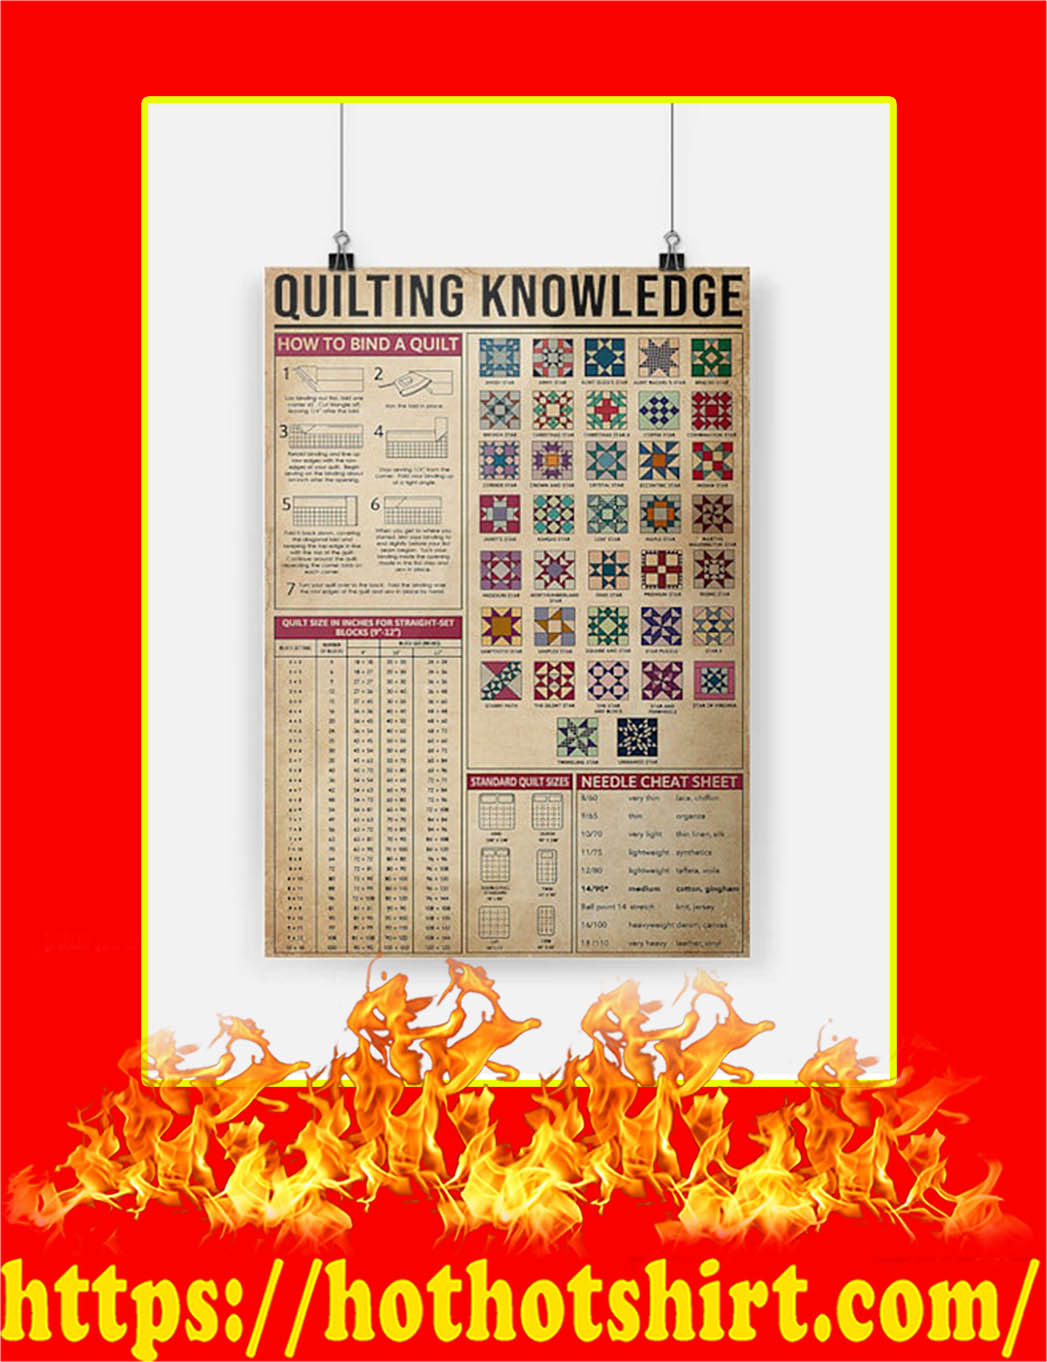 Quilting Knowledge Poster - A2